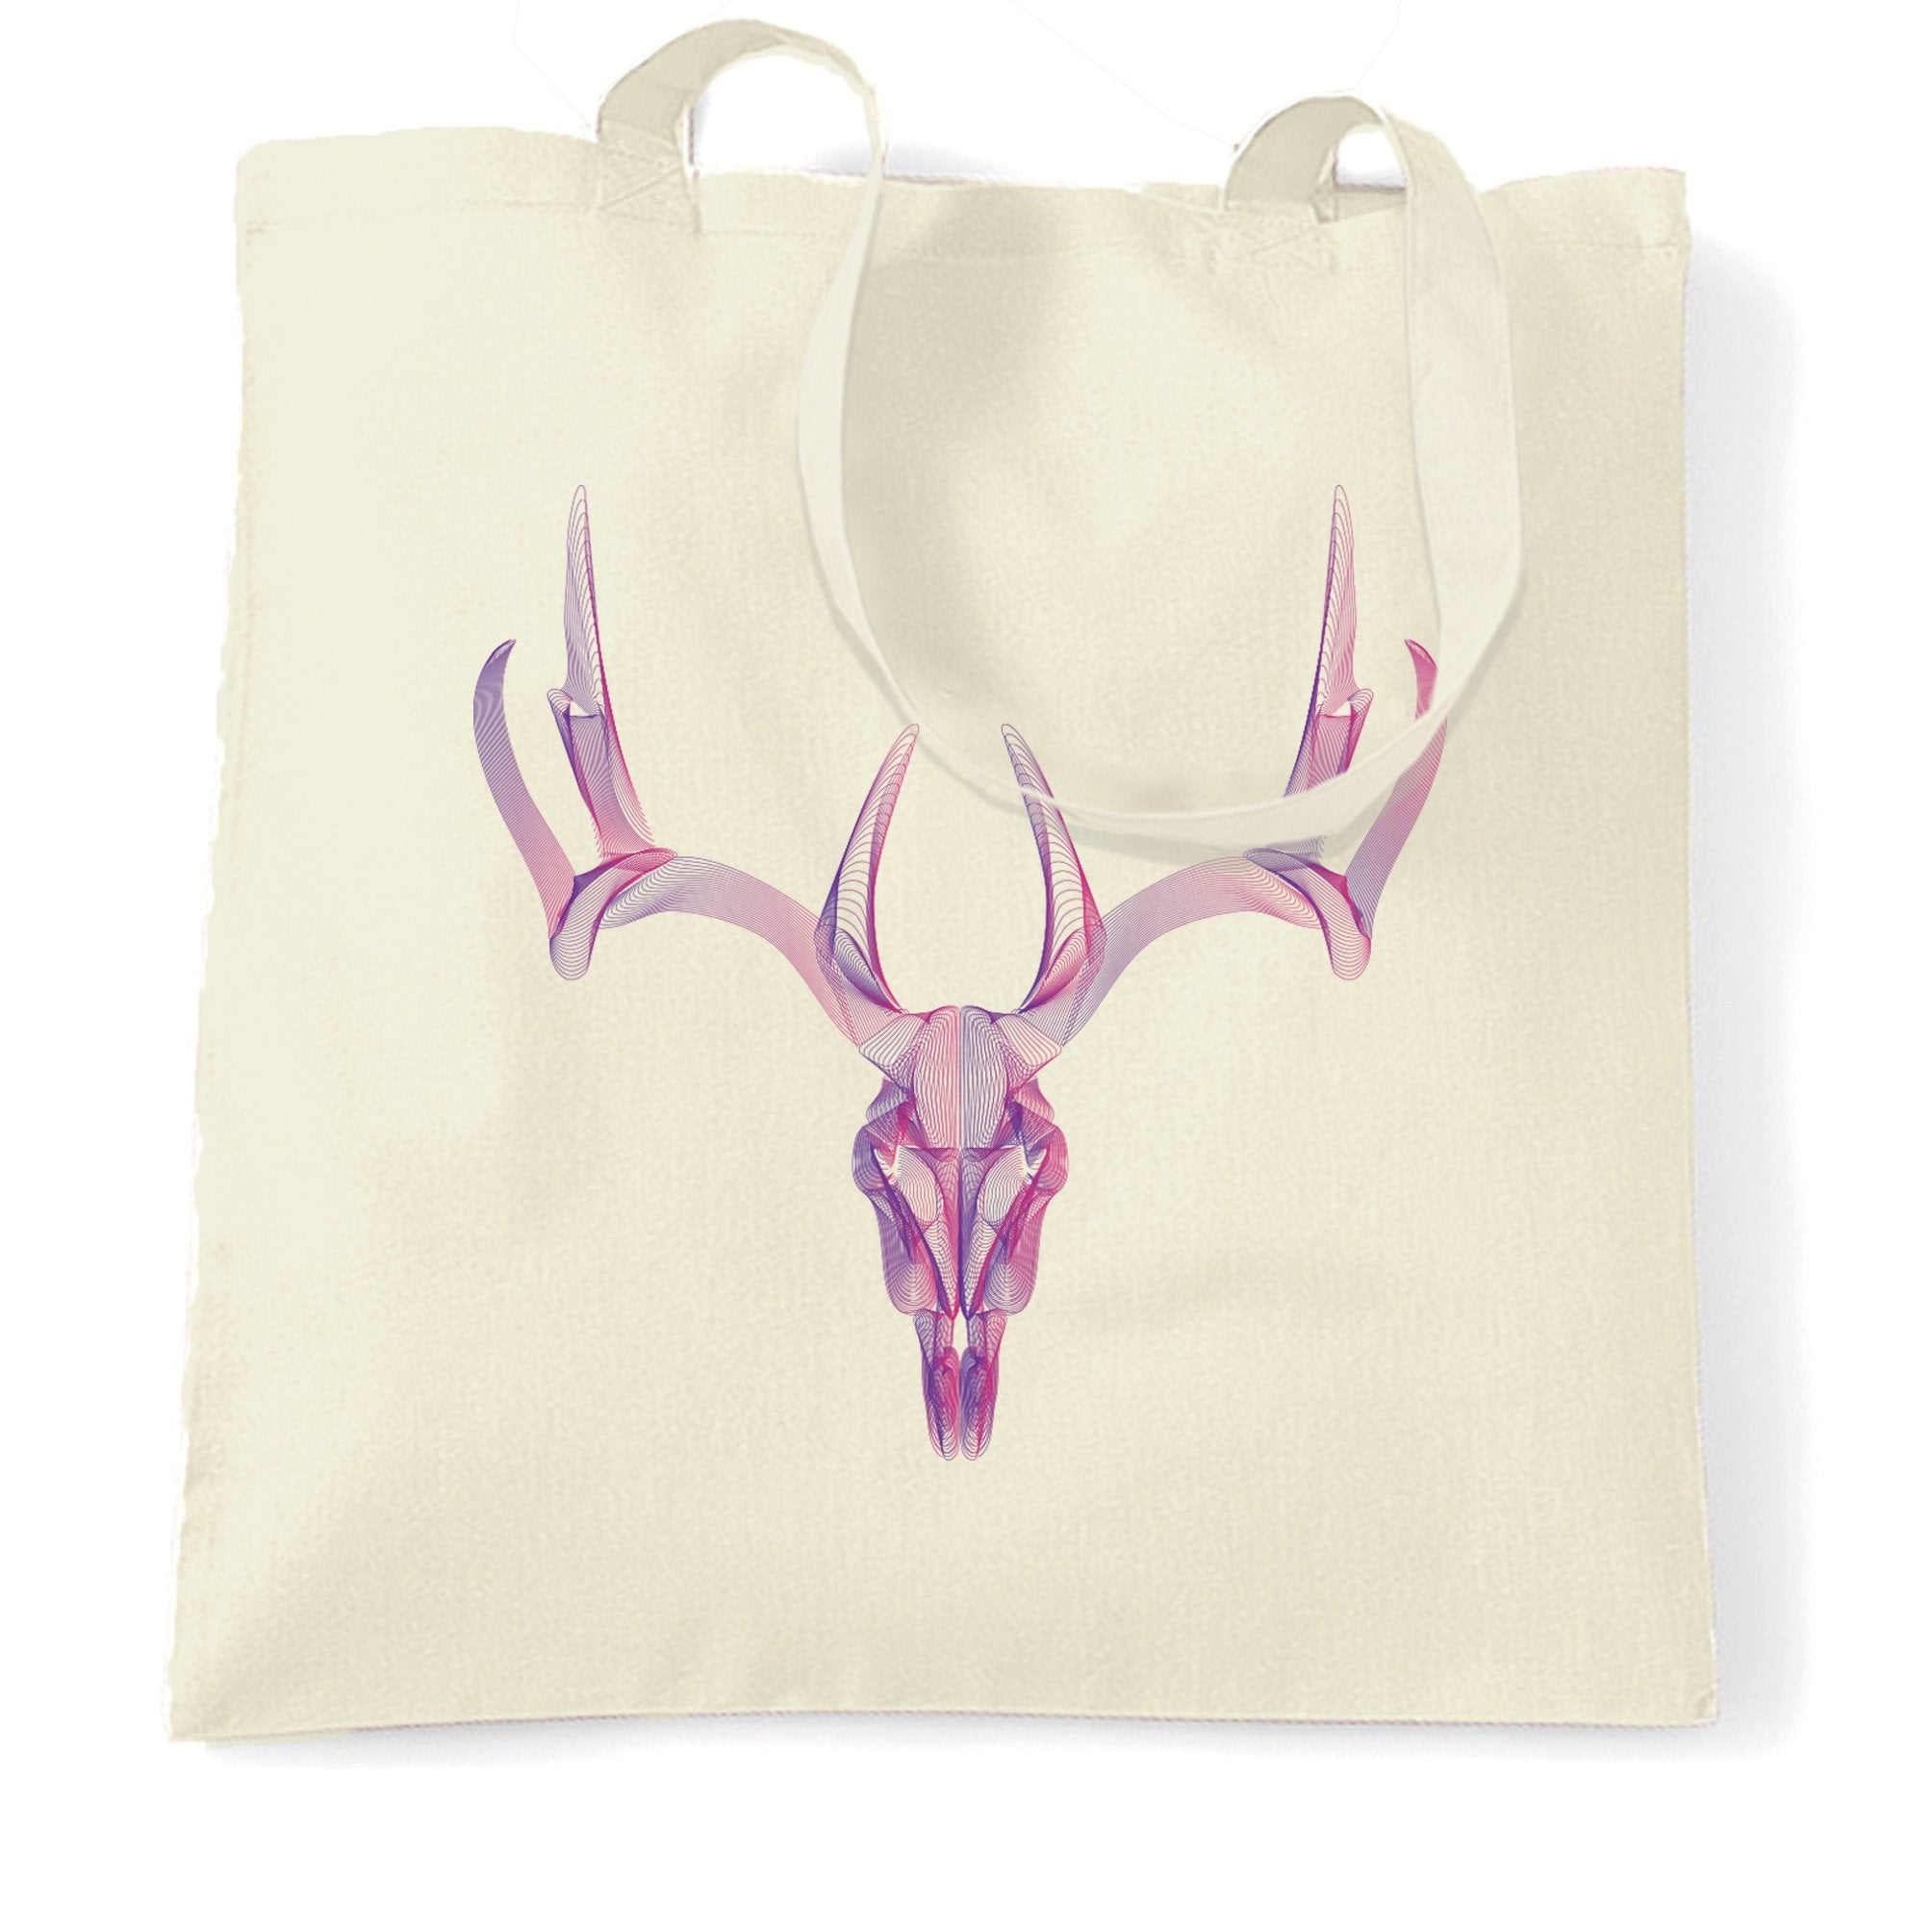 Wireframe Art Tote Bag Geometric Stag Skull Graphic